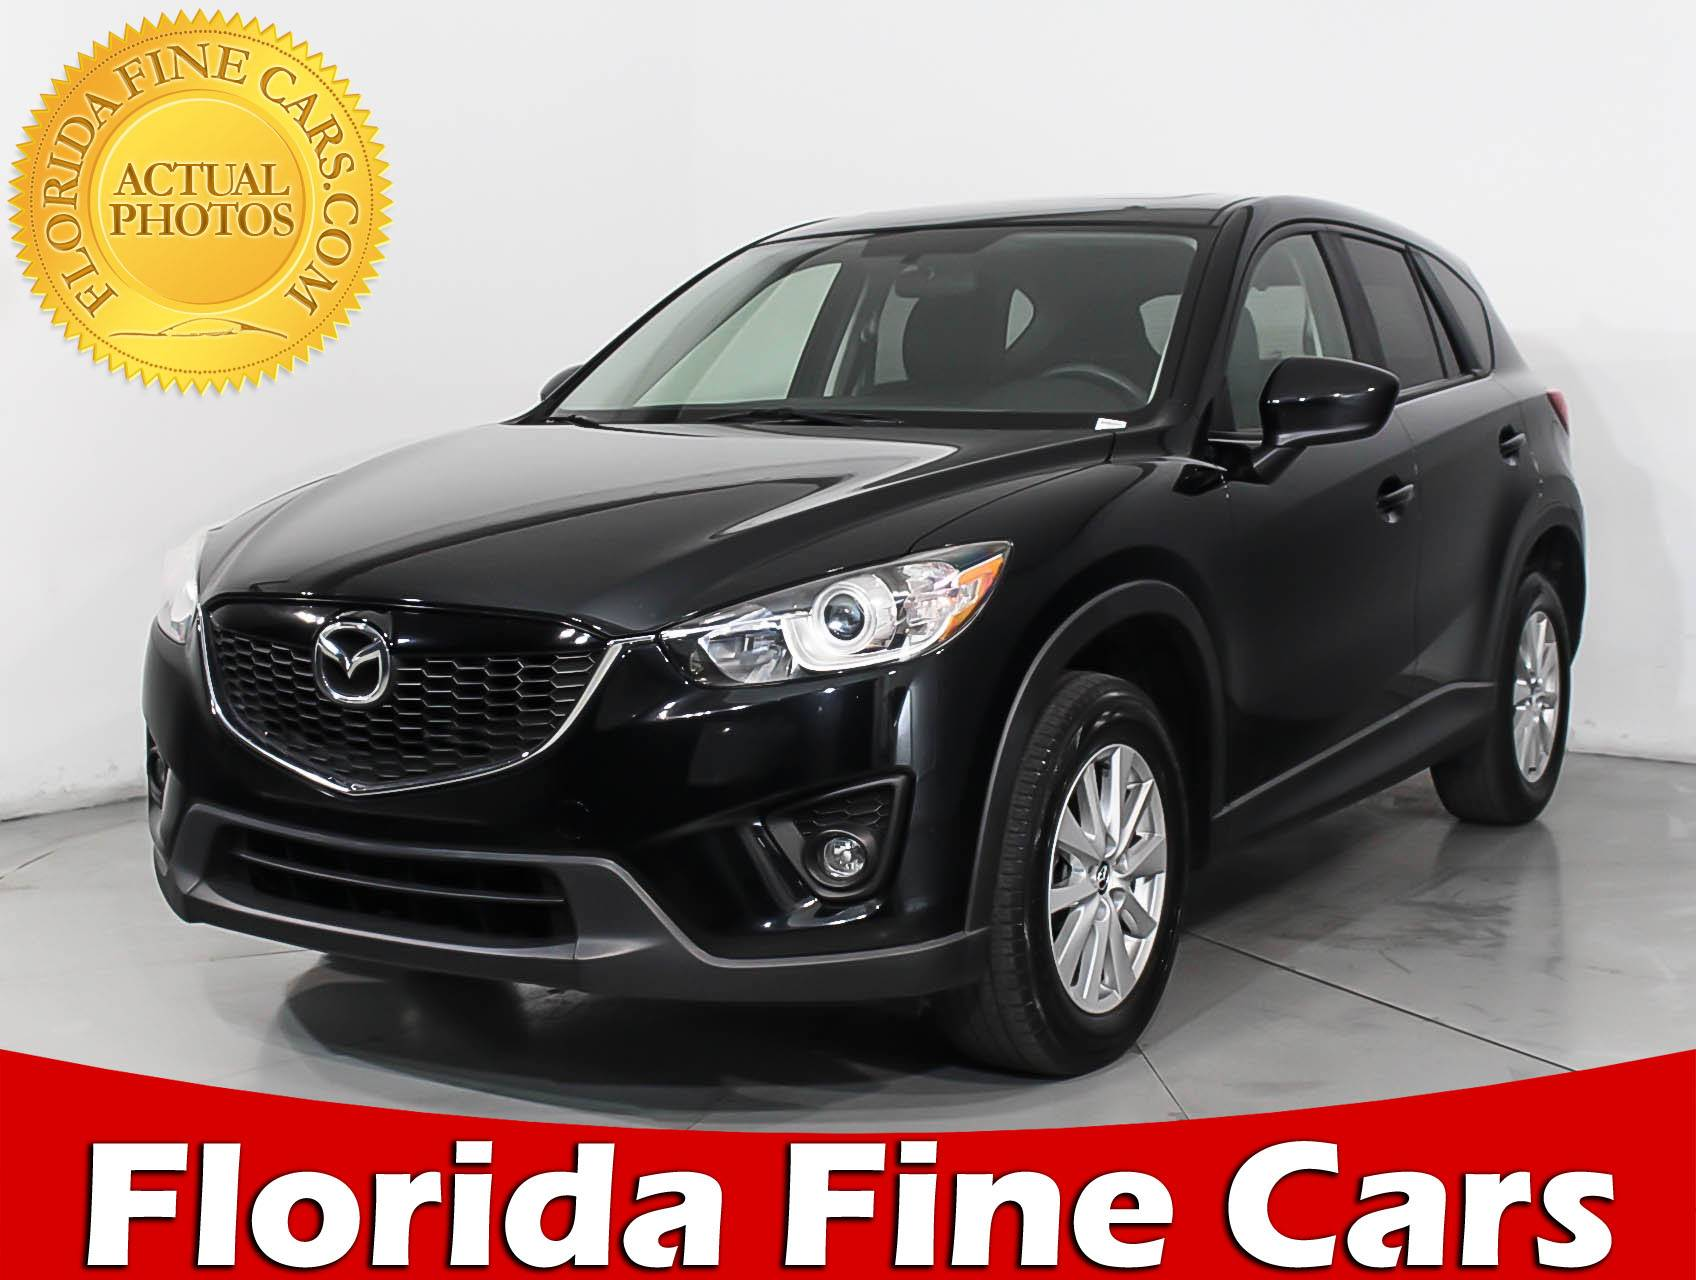 Used 2014 MAZDA CX 5 TOURING SUV For Sale In HOLLYWOOD, FL | 96361 |  Florida Fine Cars